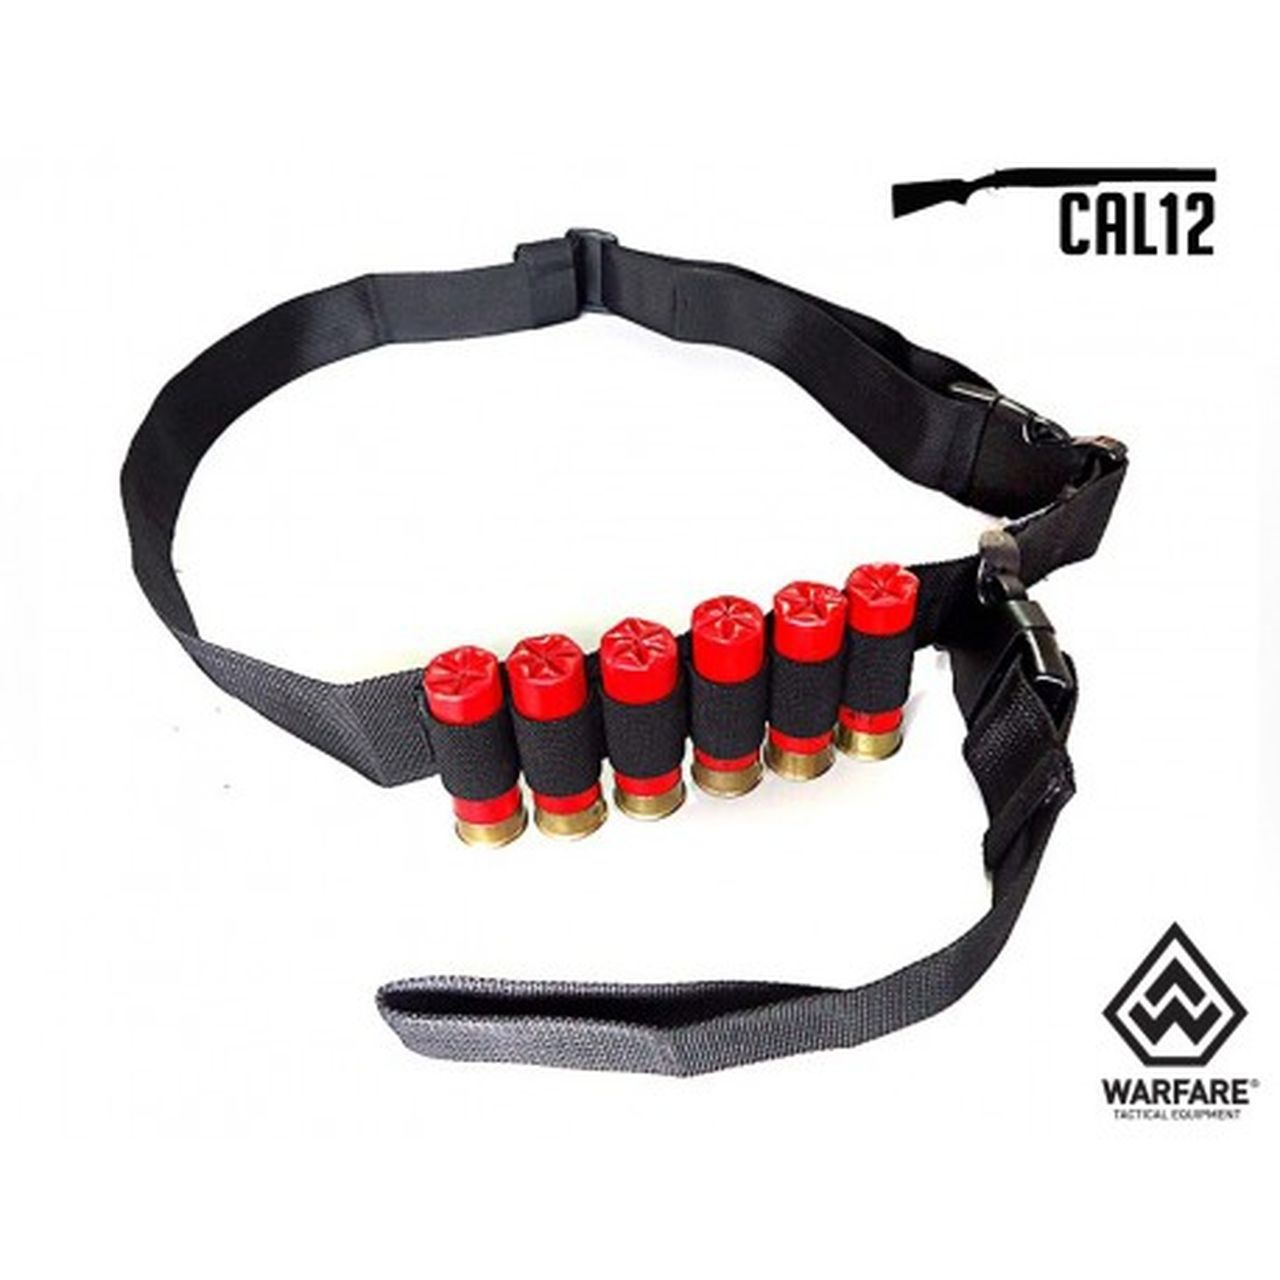 Bandoleira Warfare Calibre 12 - Black U